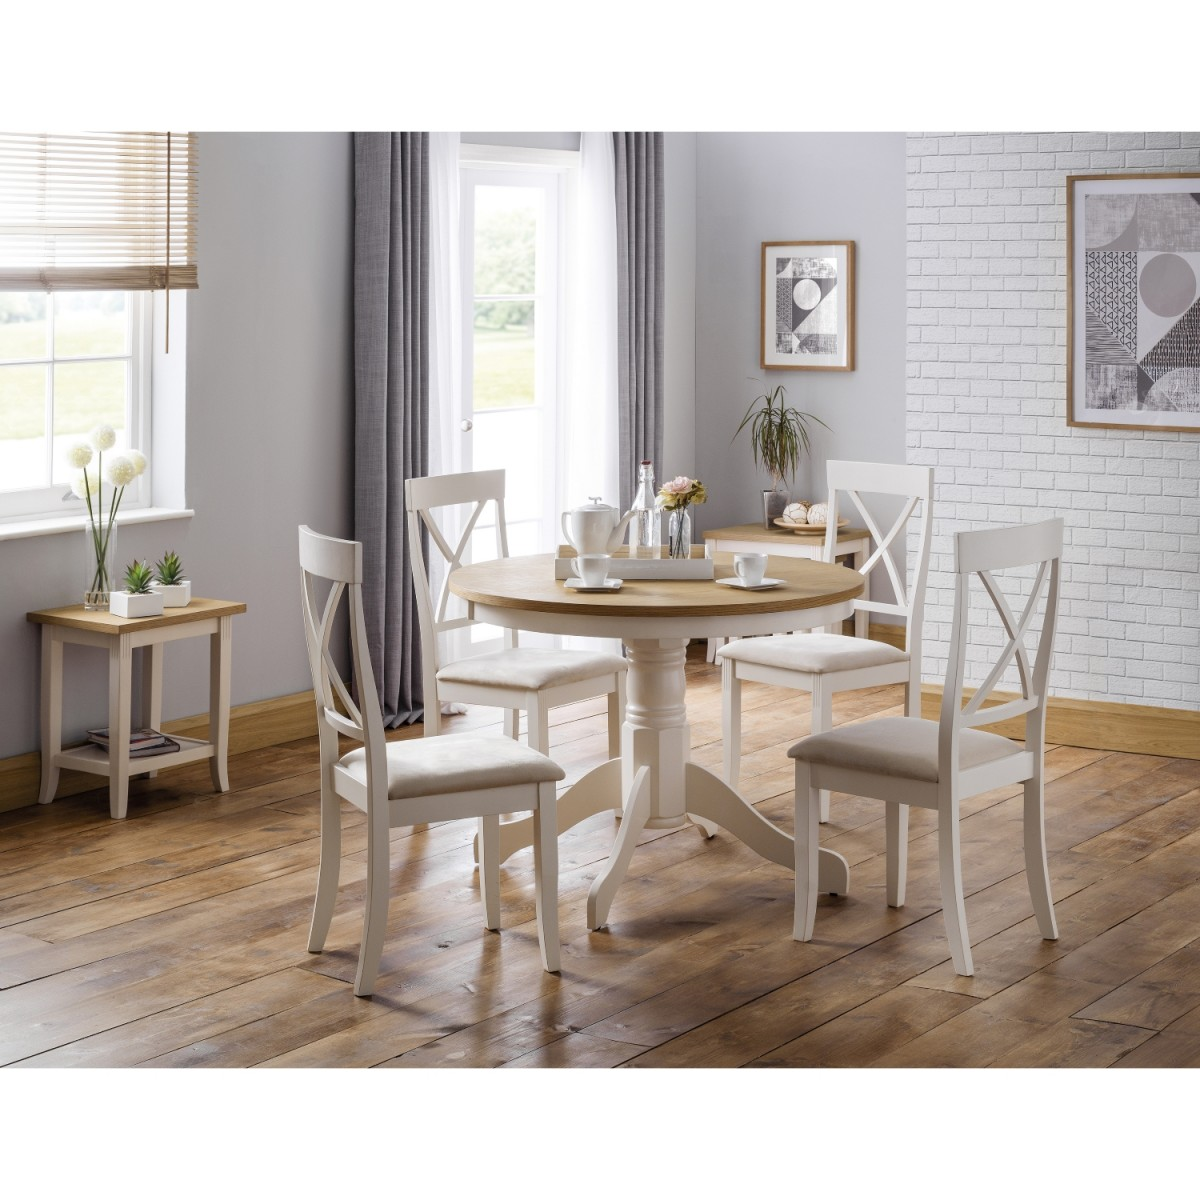 ivory dining chairs uk sideline for basketball davenport oak round set with 4 ebay